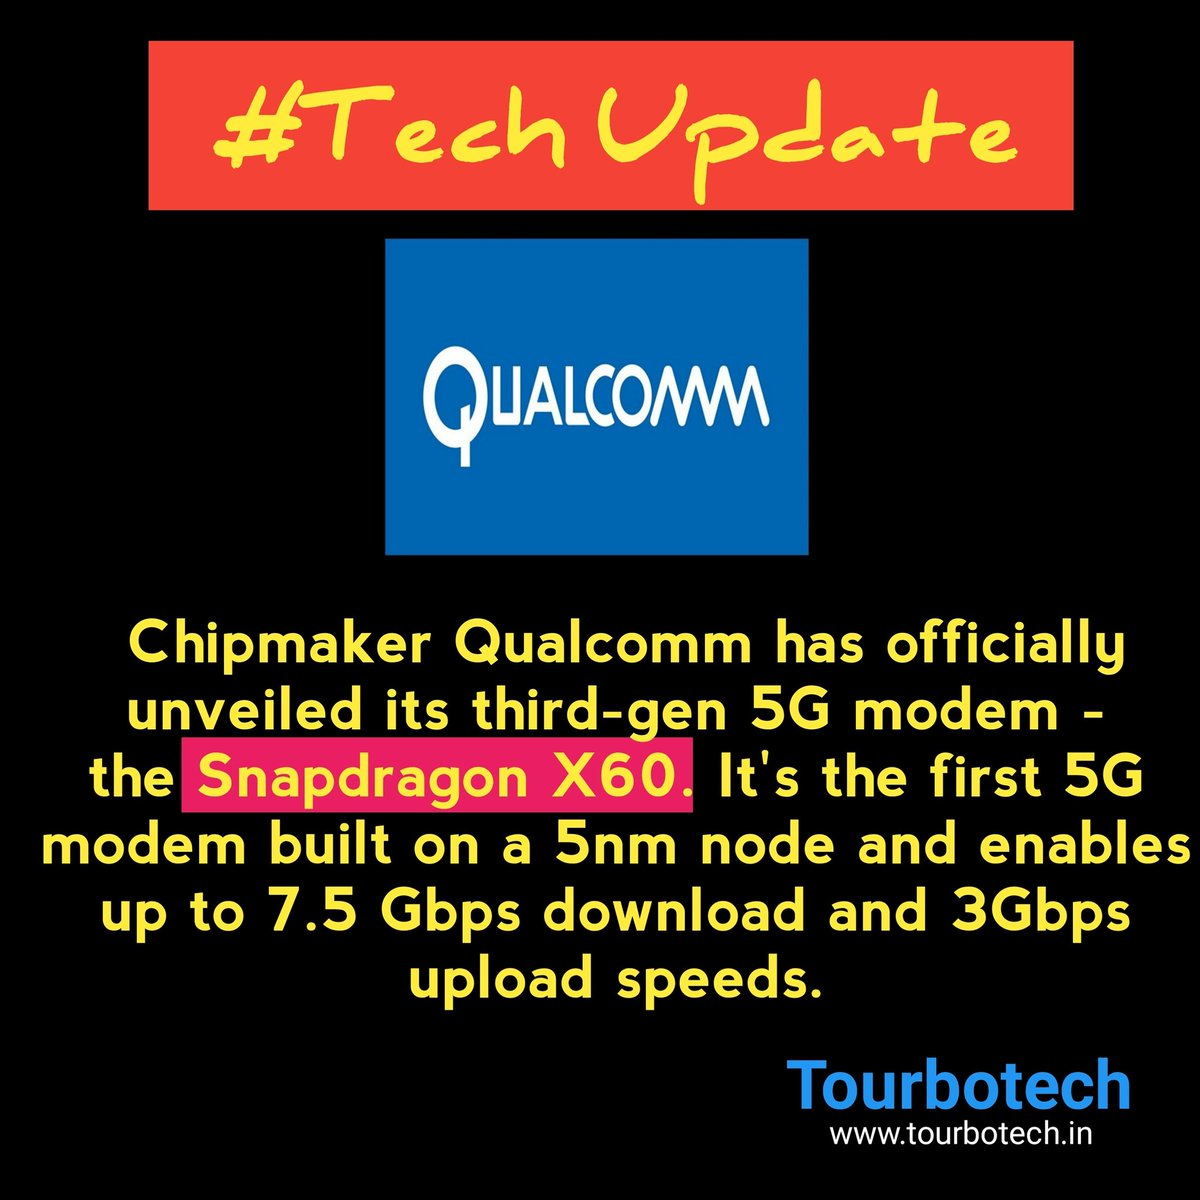 Qualcomm has officially unveiled its third-gen 5G modem - the Snapdragon X60. It's the first 5G modem built on a 5nm node and enables up to 7.5 Gbps download and 3Gbps upload speeds #Qualcomm #5G #techupdate #Indiapic.twitter.com/lHcLhVxP1X